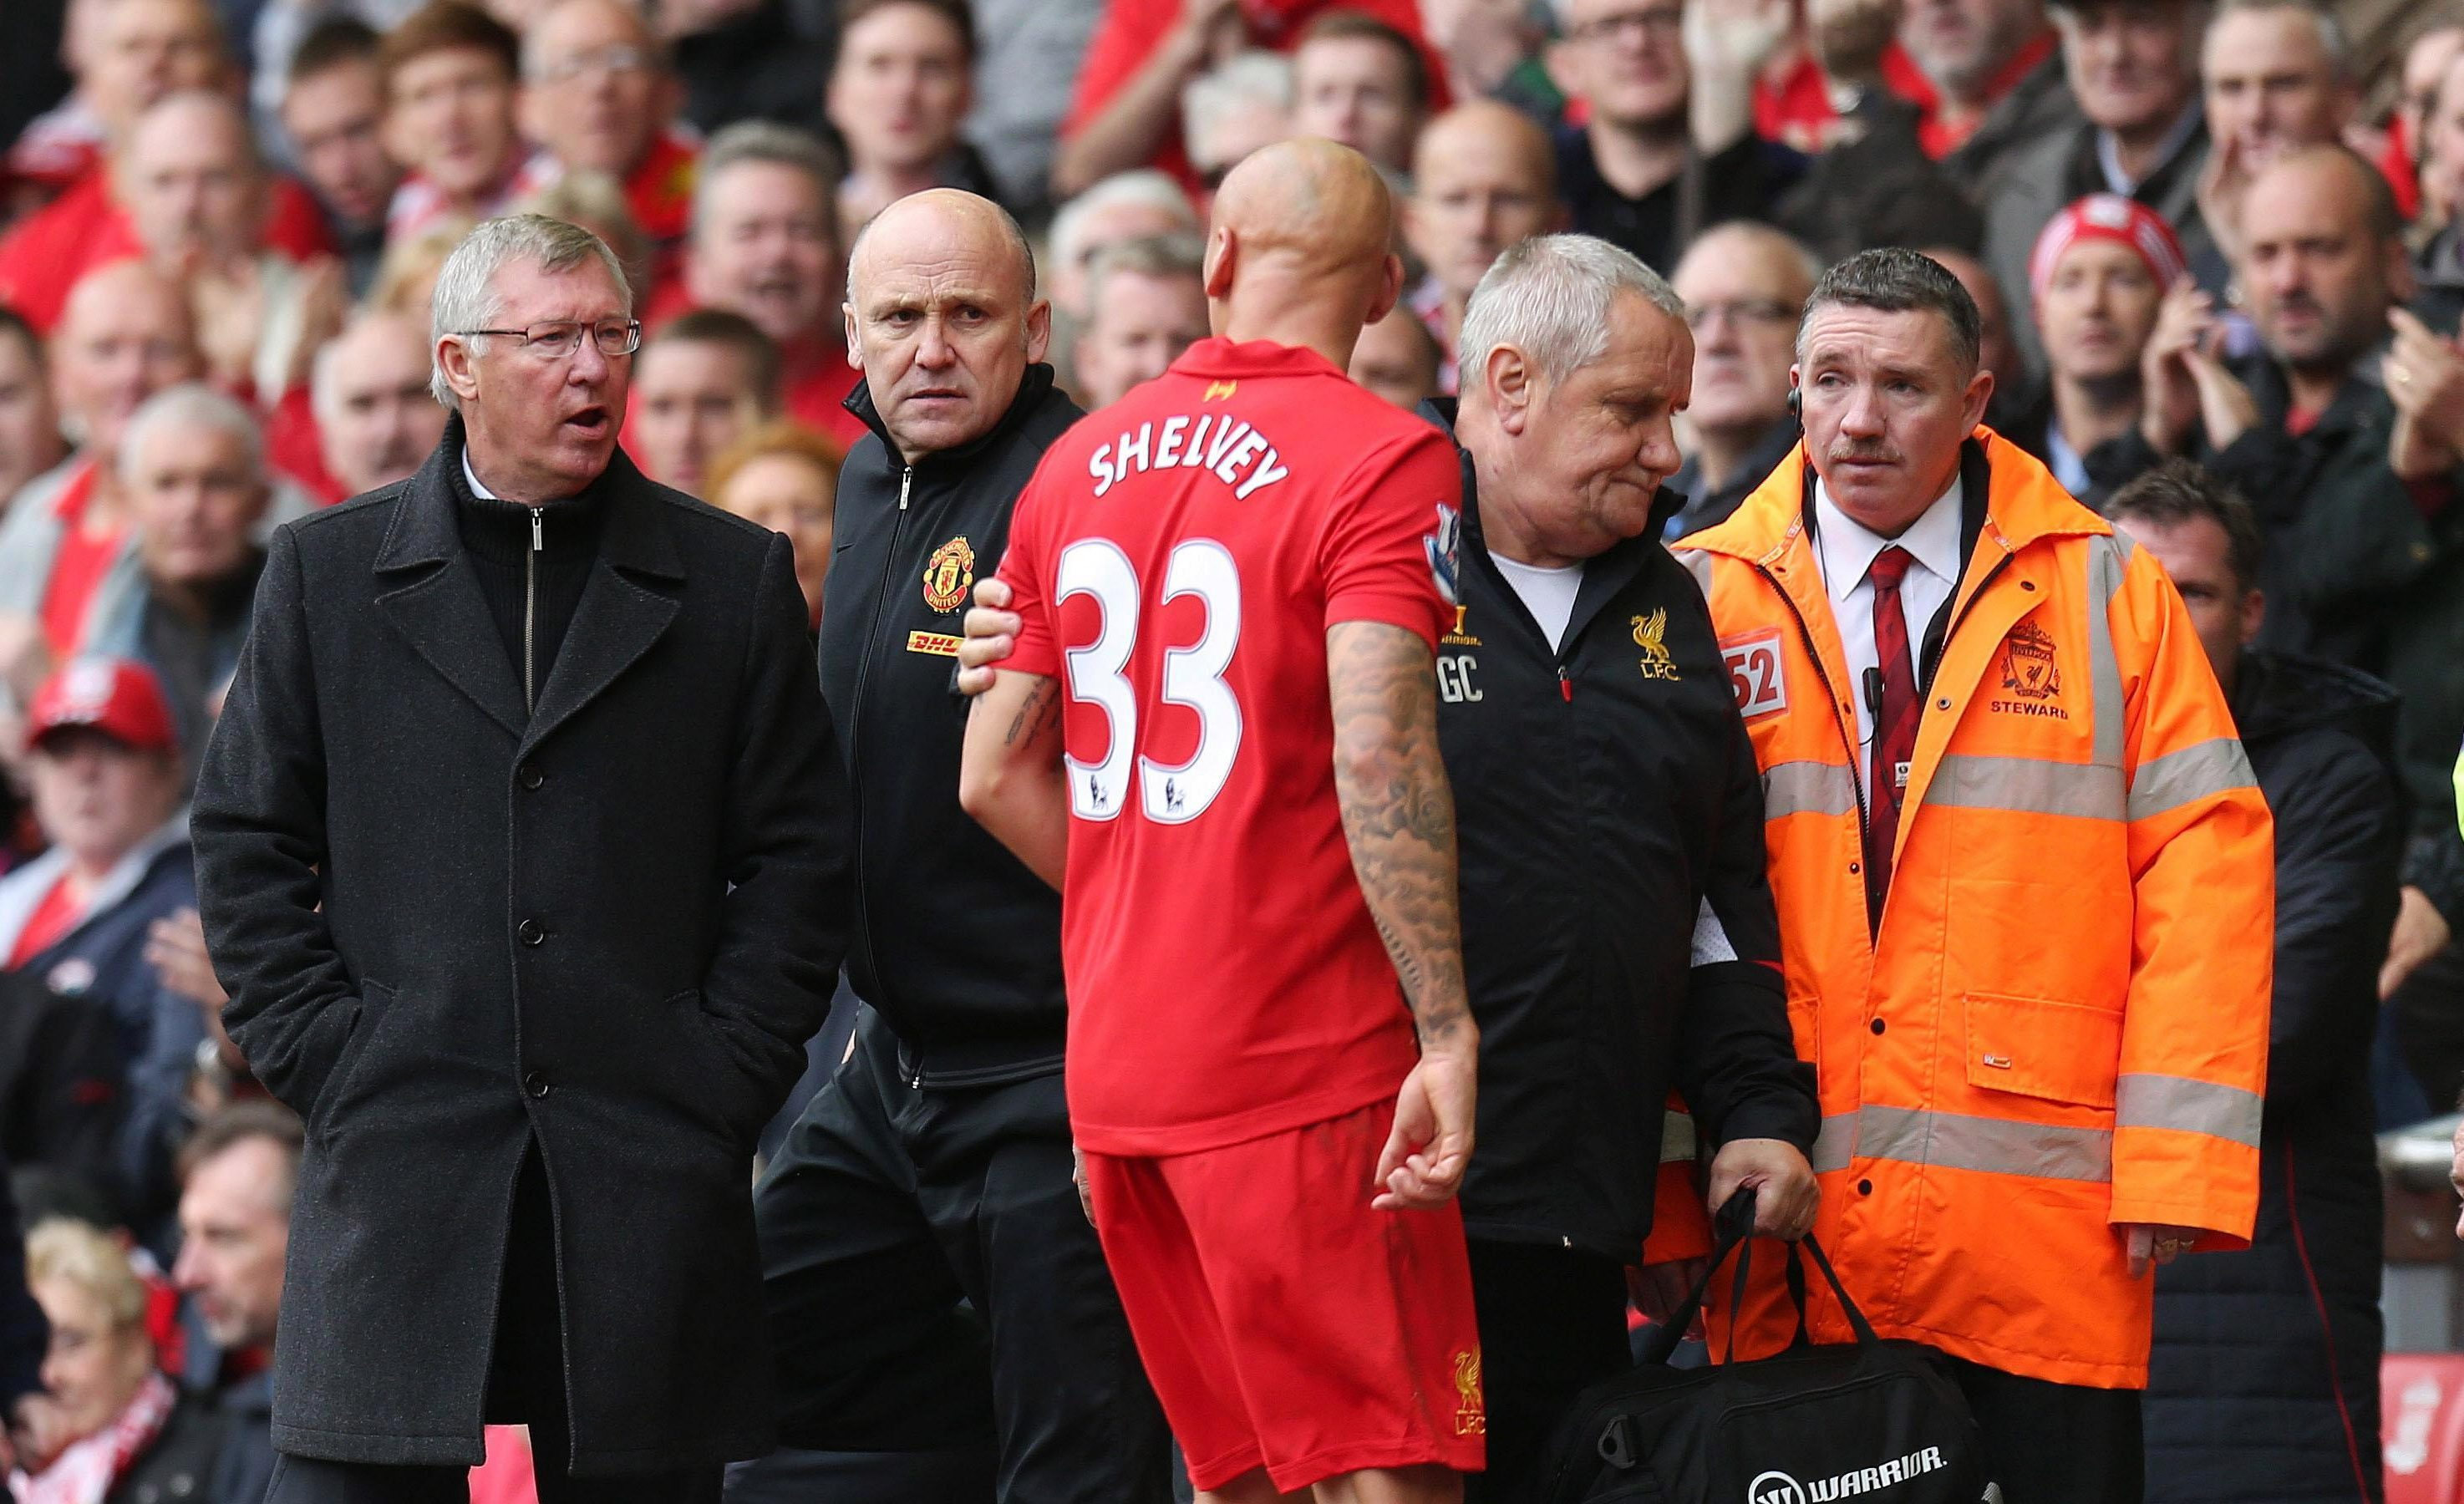 Sir Alex Ferguson loved getting the better of Liverpool, especially at Anfield